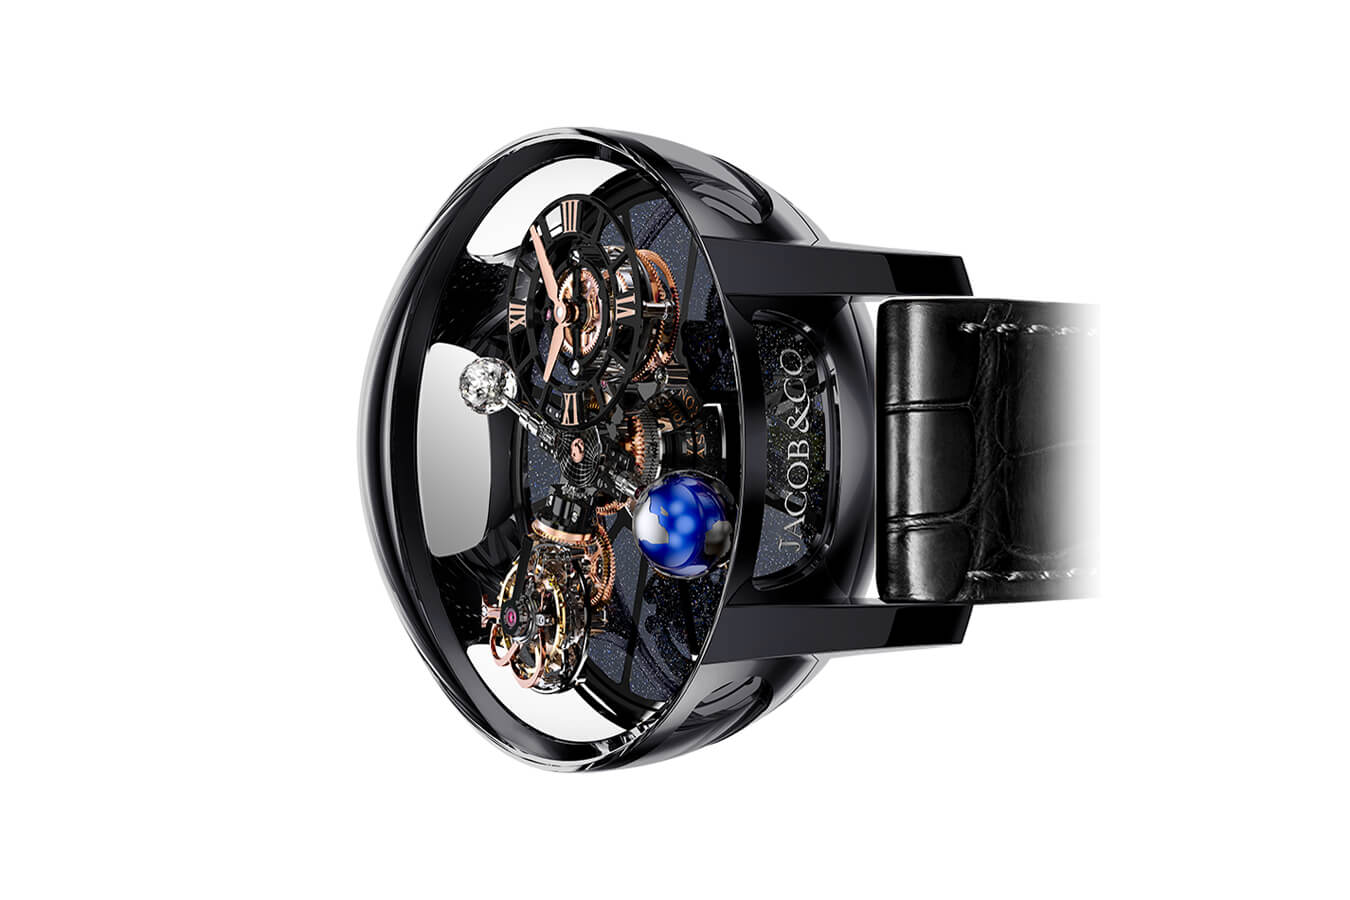 Đồng Hồ Jacob & Co Astronomia Tourbillon Black Ceramic Black & Rose Gold Movement AT100.40.95.KN.SD.B